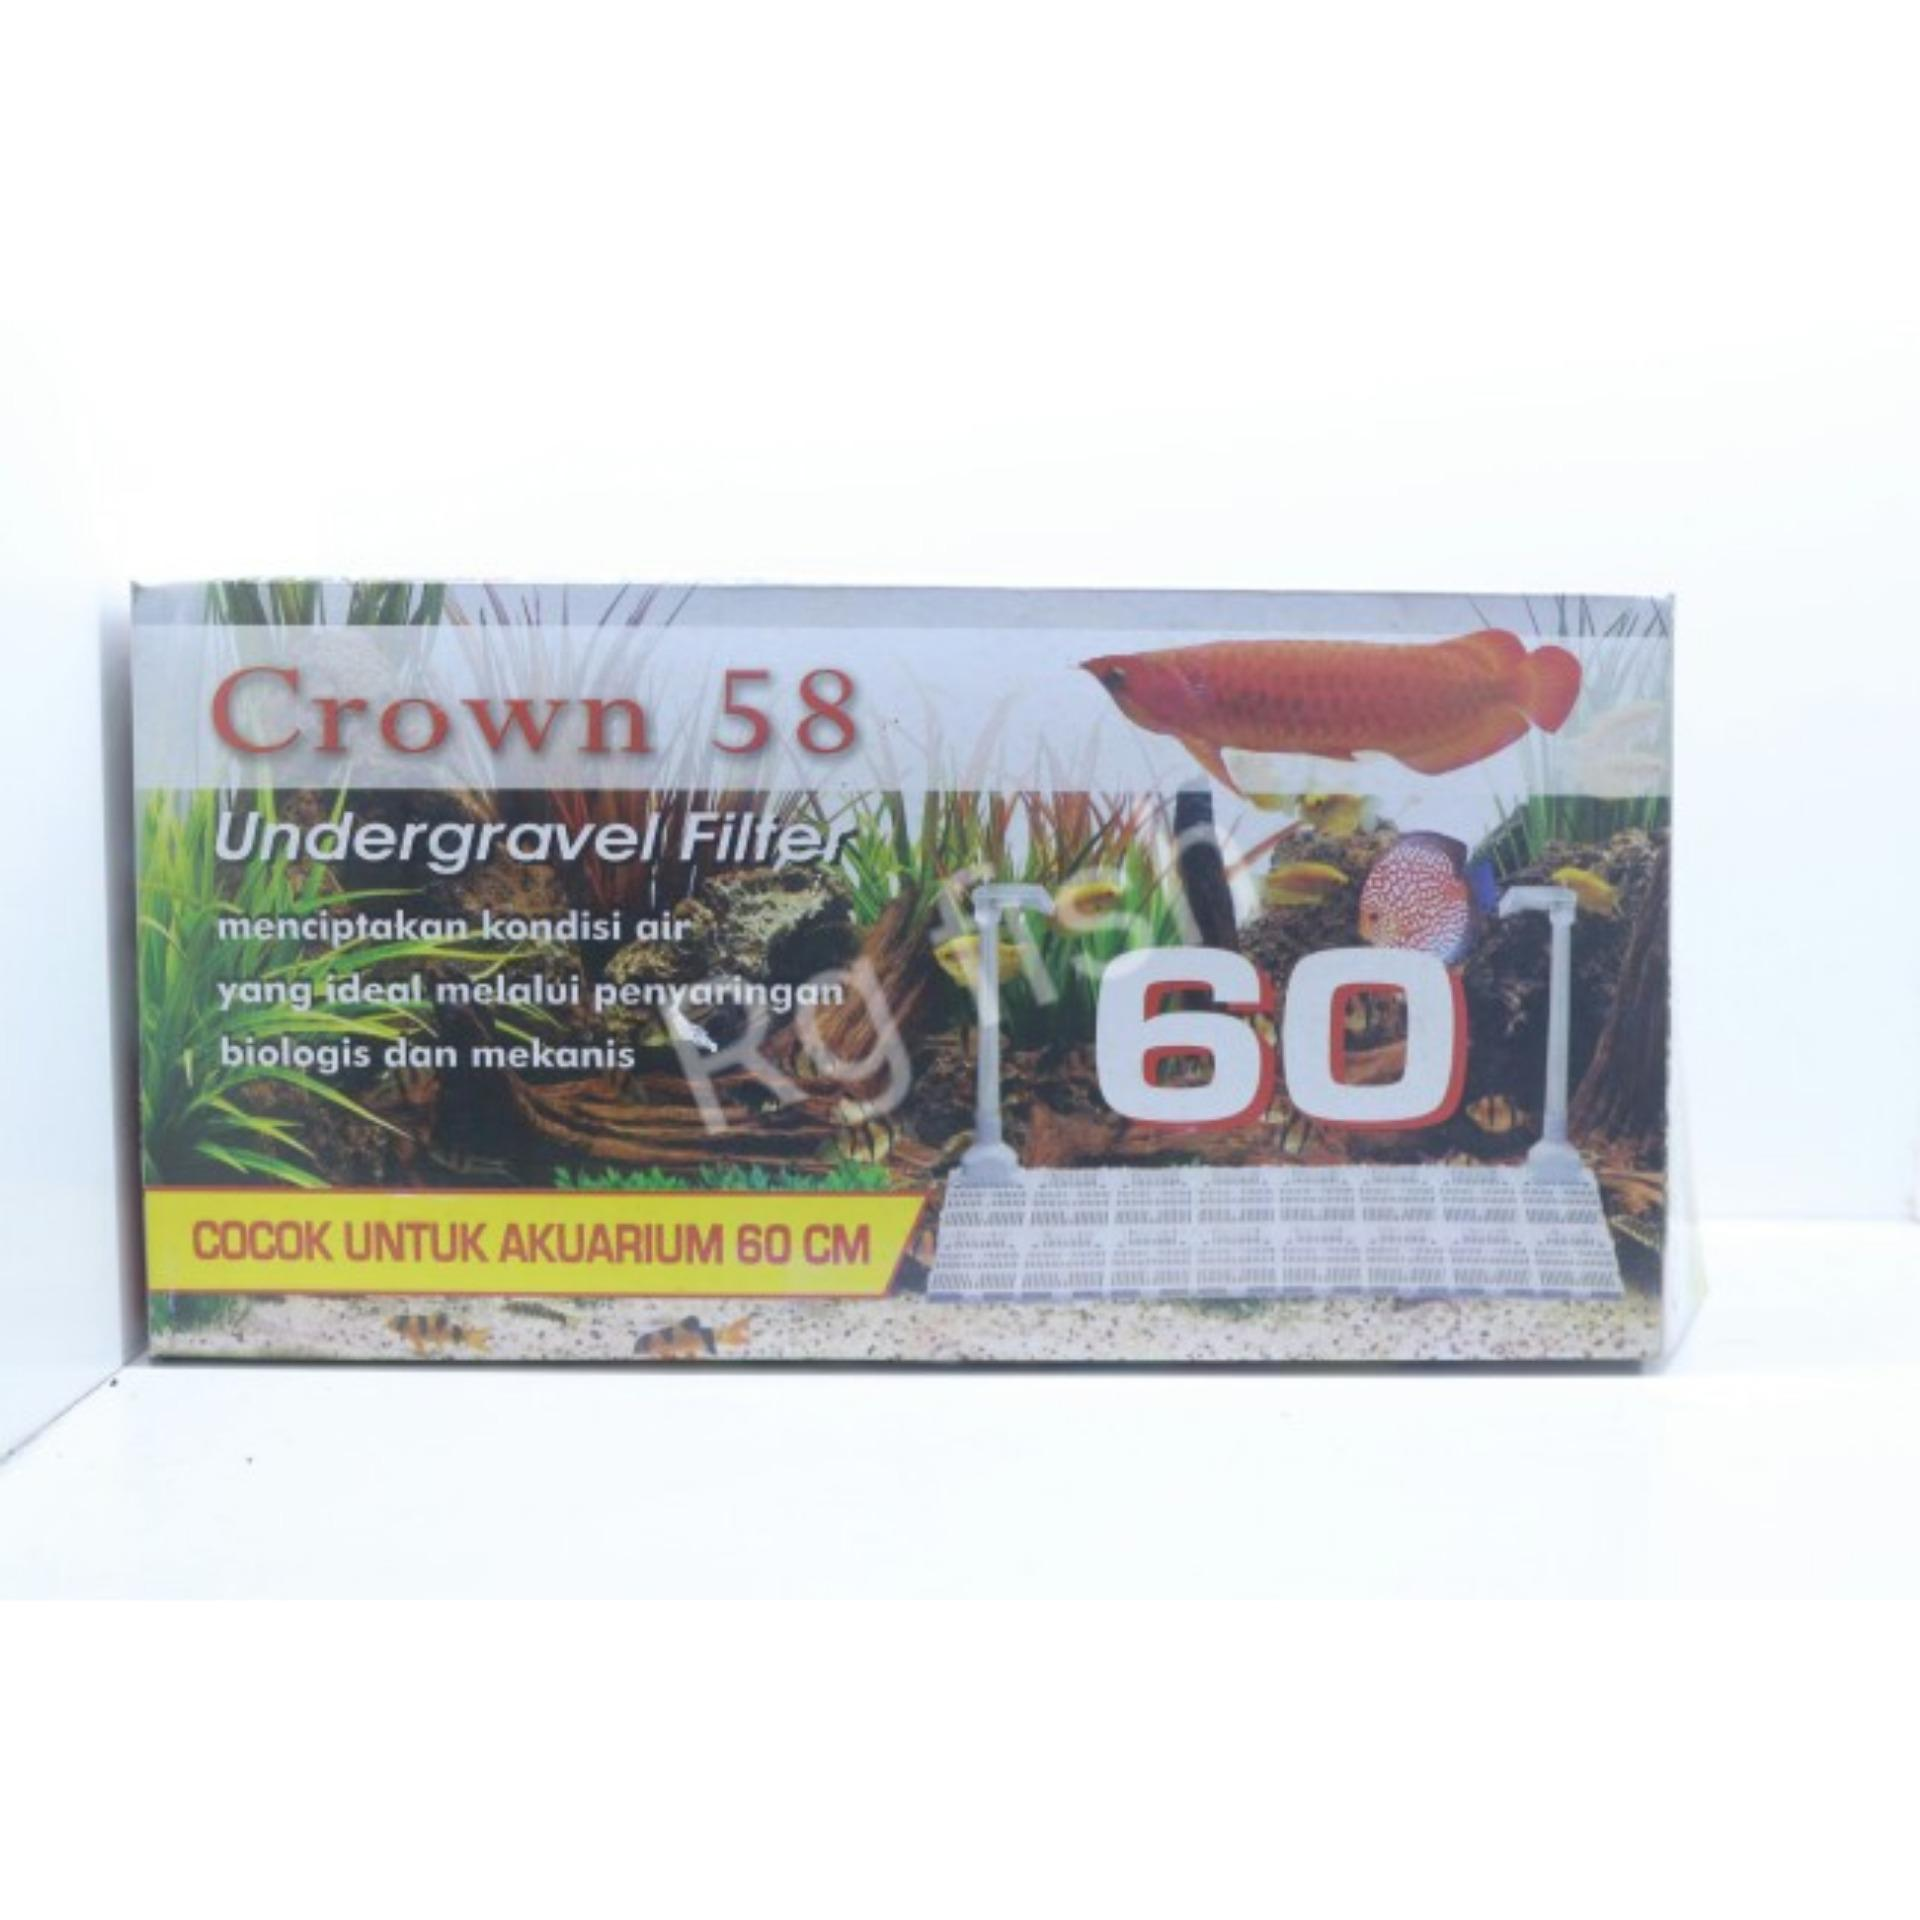 undergravel filter 60 crown 58